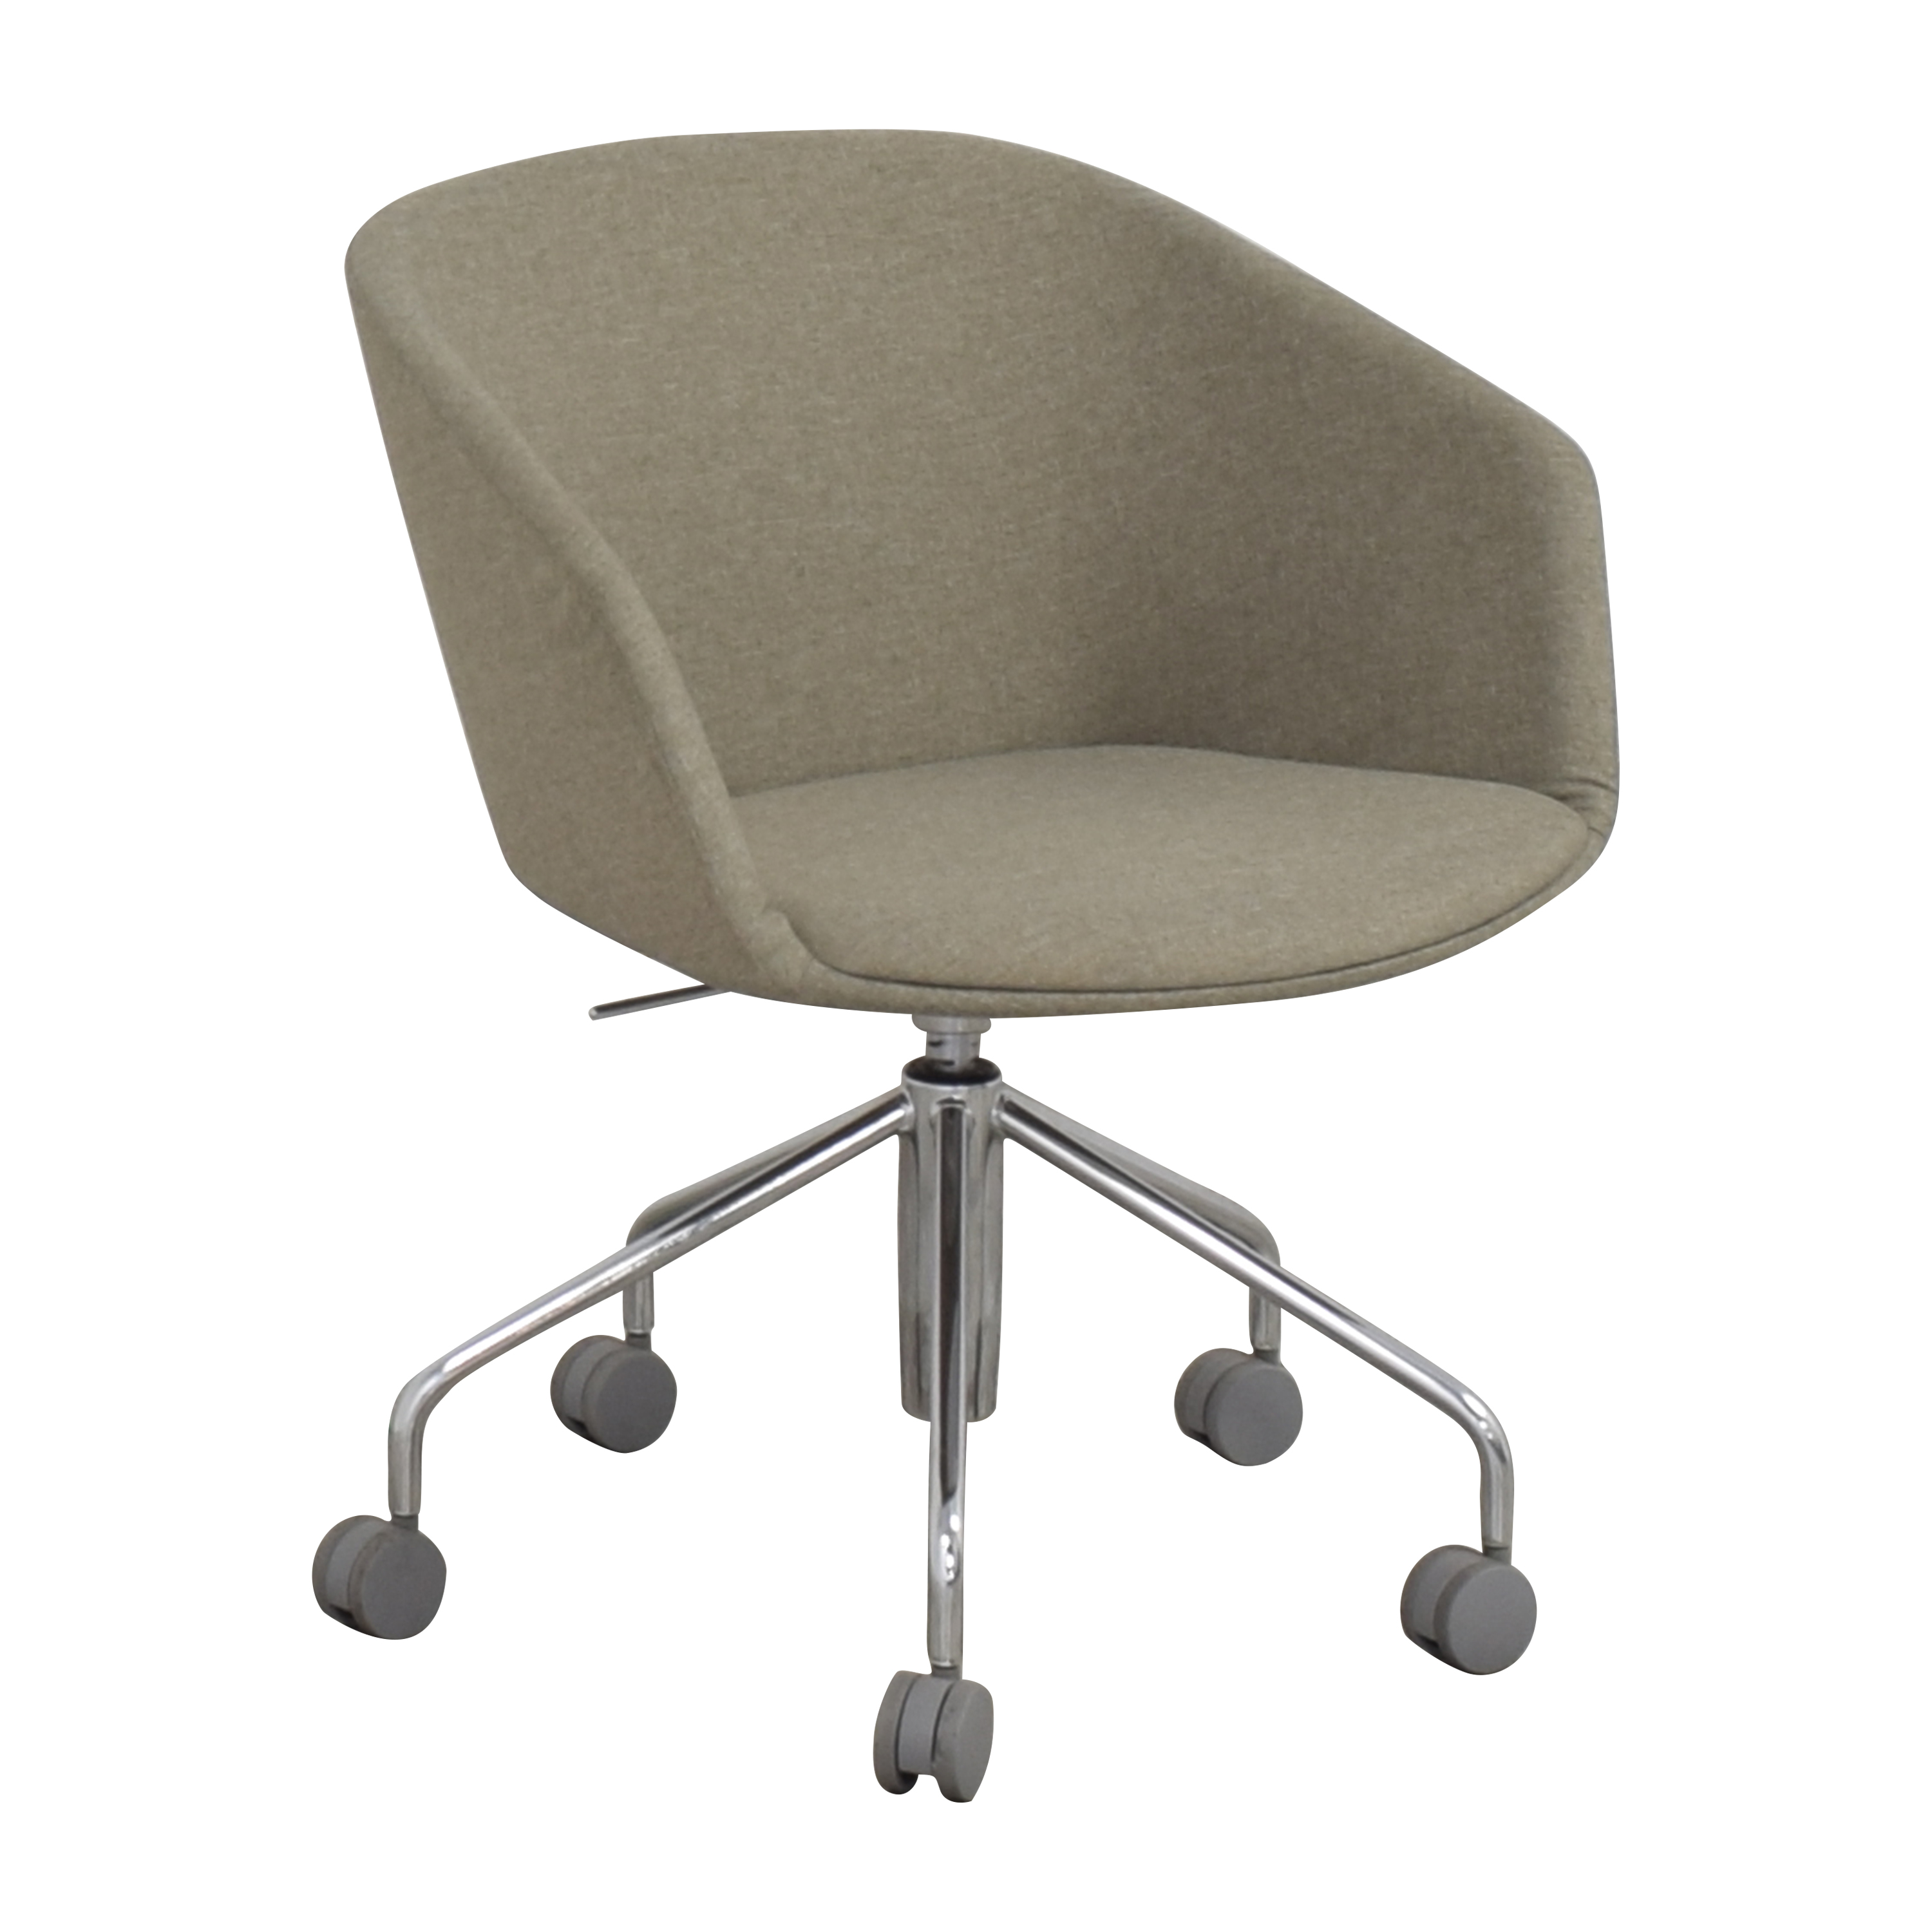 Poppin Poppin Pitch Meeting Chair second hand